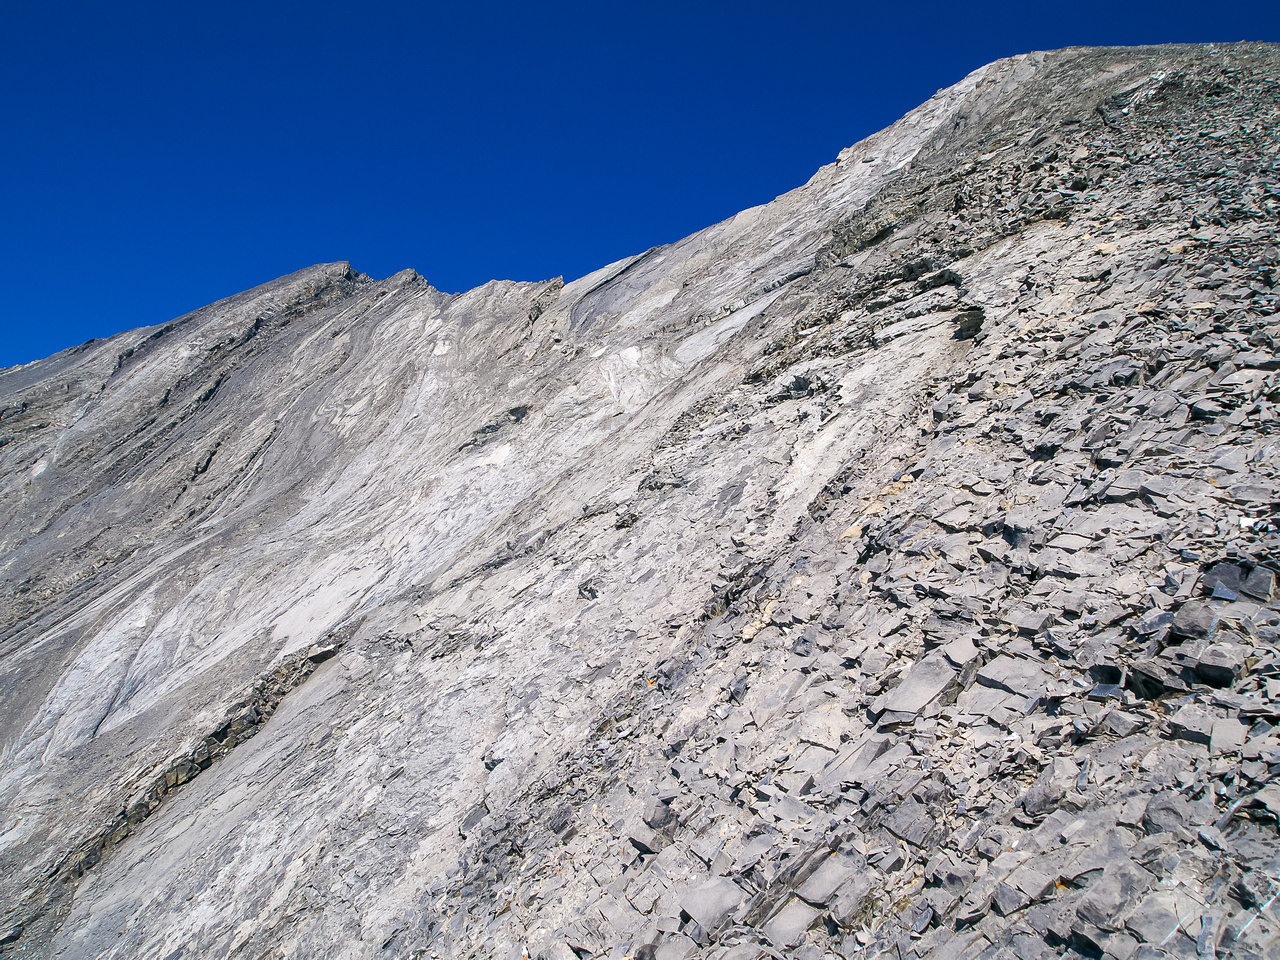 Looking up from the col, false summit at right, summit at left.